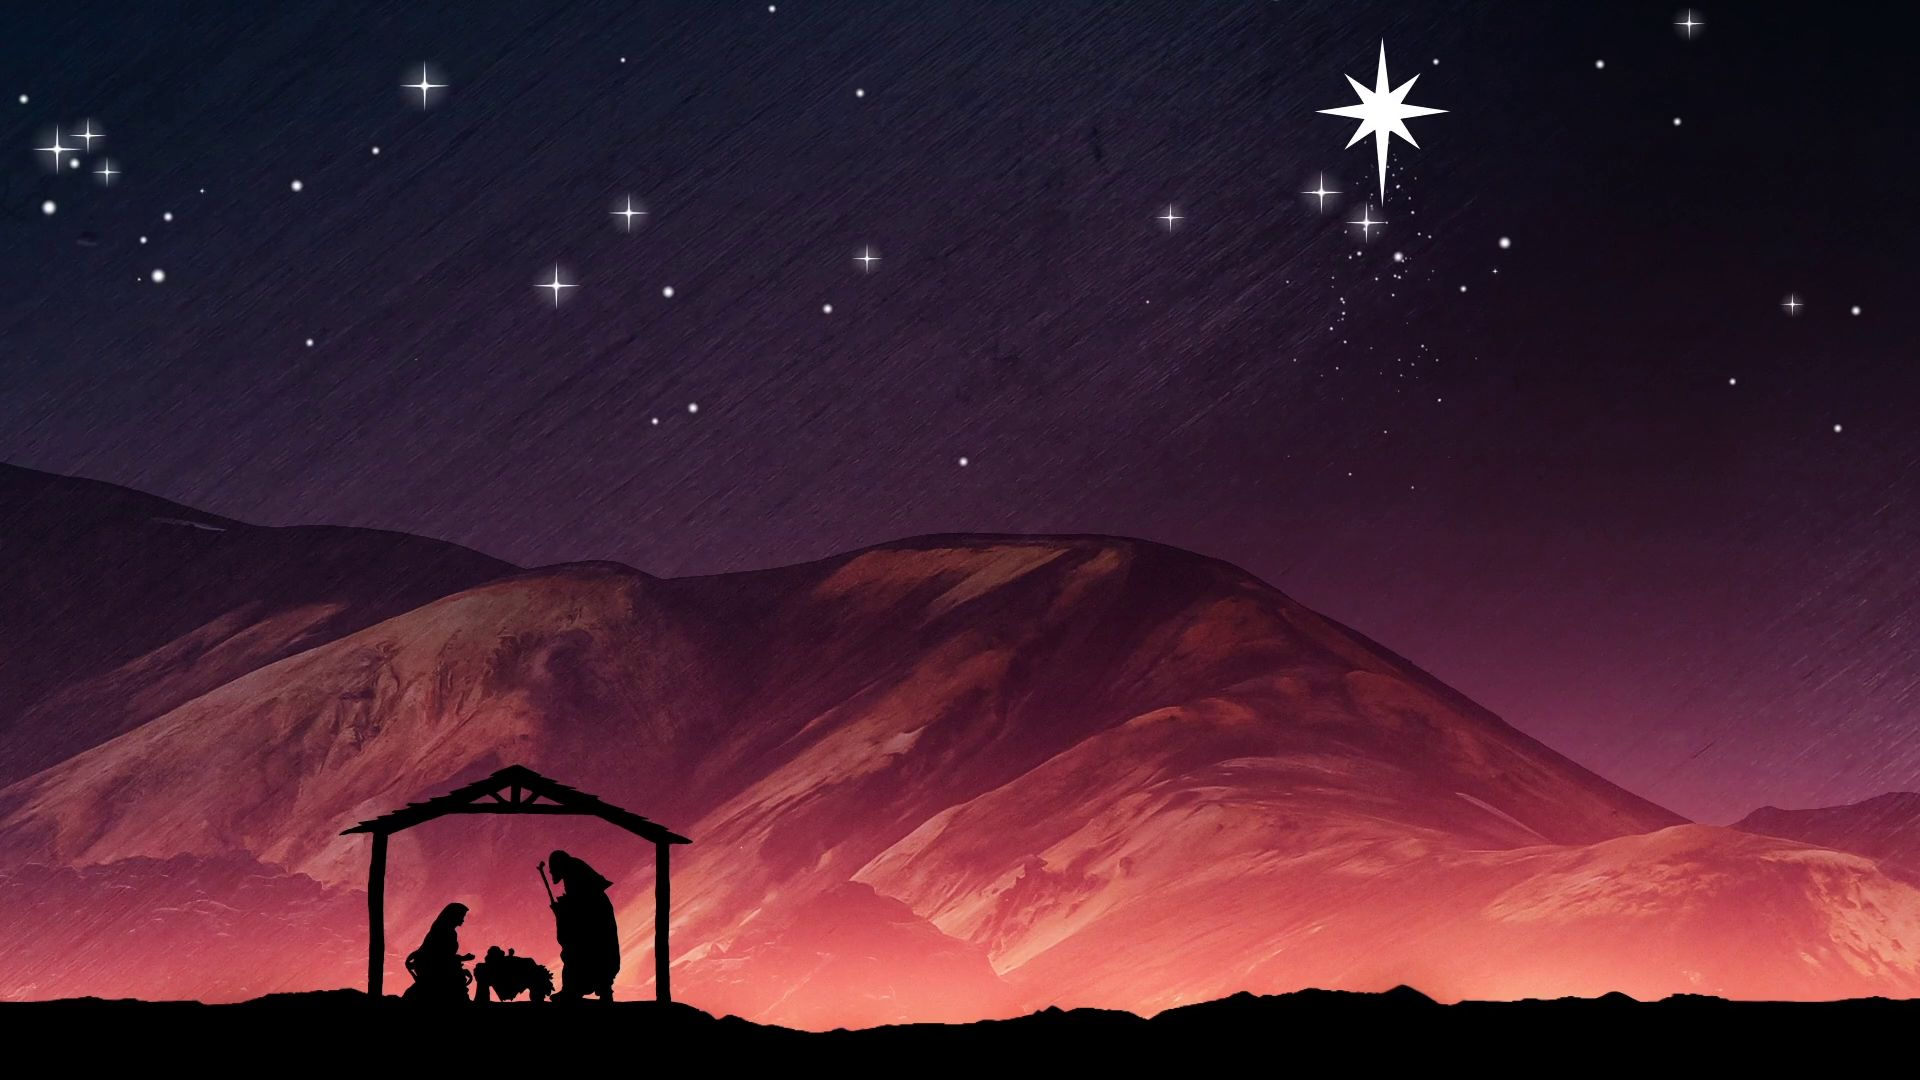 10 Top Christmas Nativity Background Images Full Hd 1080p For Pc Background Christmas Jesus Merry Christmas Jesus Jesus Background